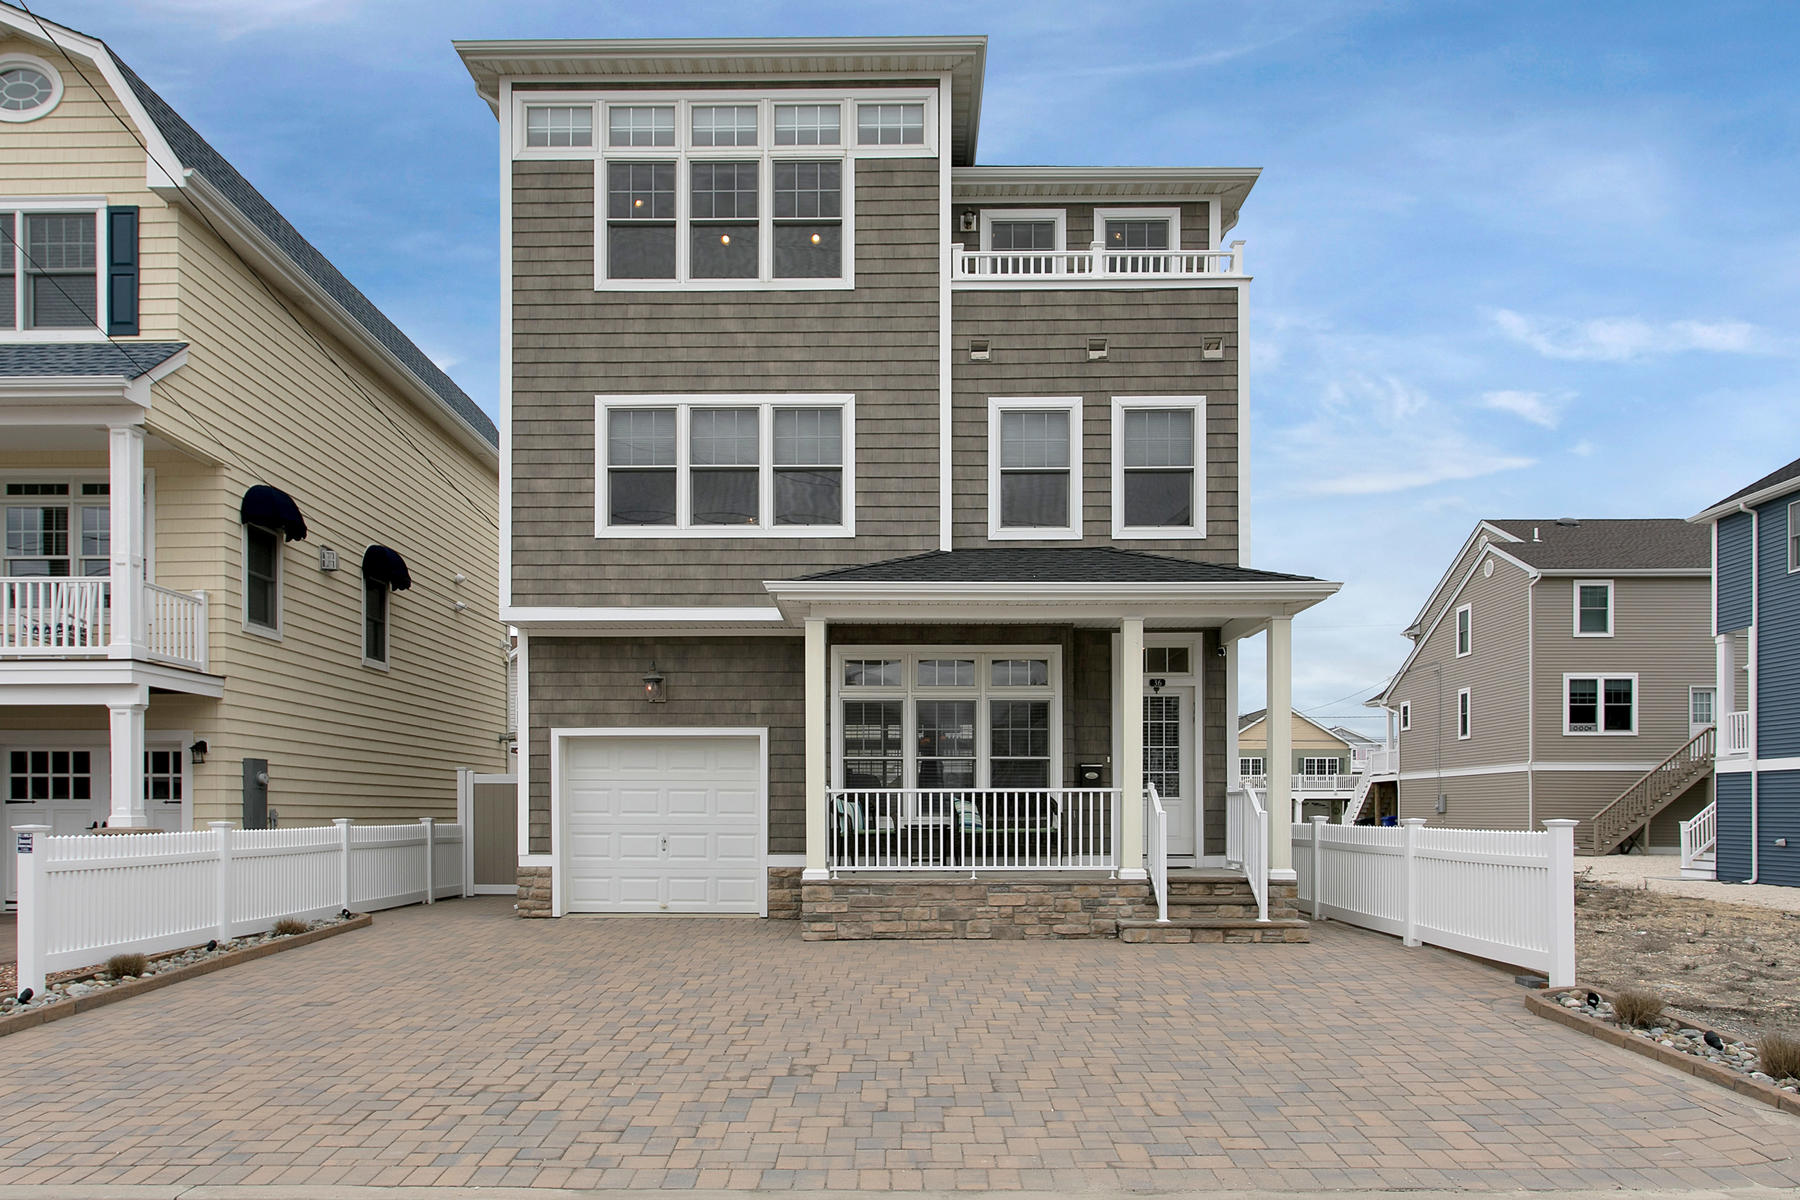 Casa Unifamiliar por un Venta en Custom Built Beach Block Home 36 Fort Avenue Ortley Beach, Nueva Jersey 08751 Estados Unidos